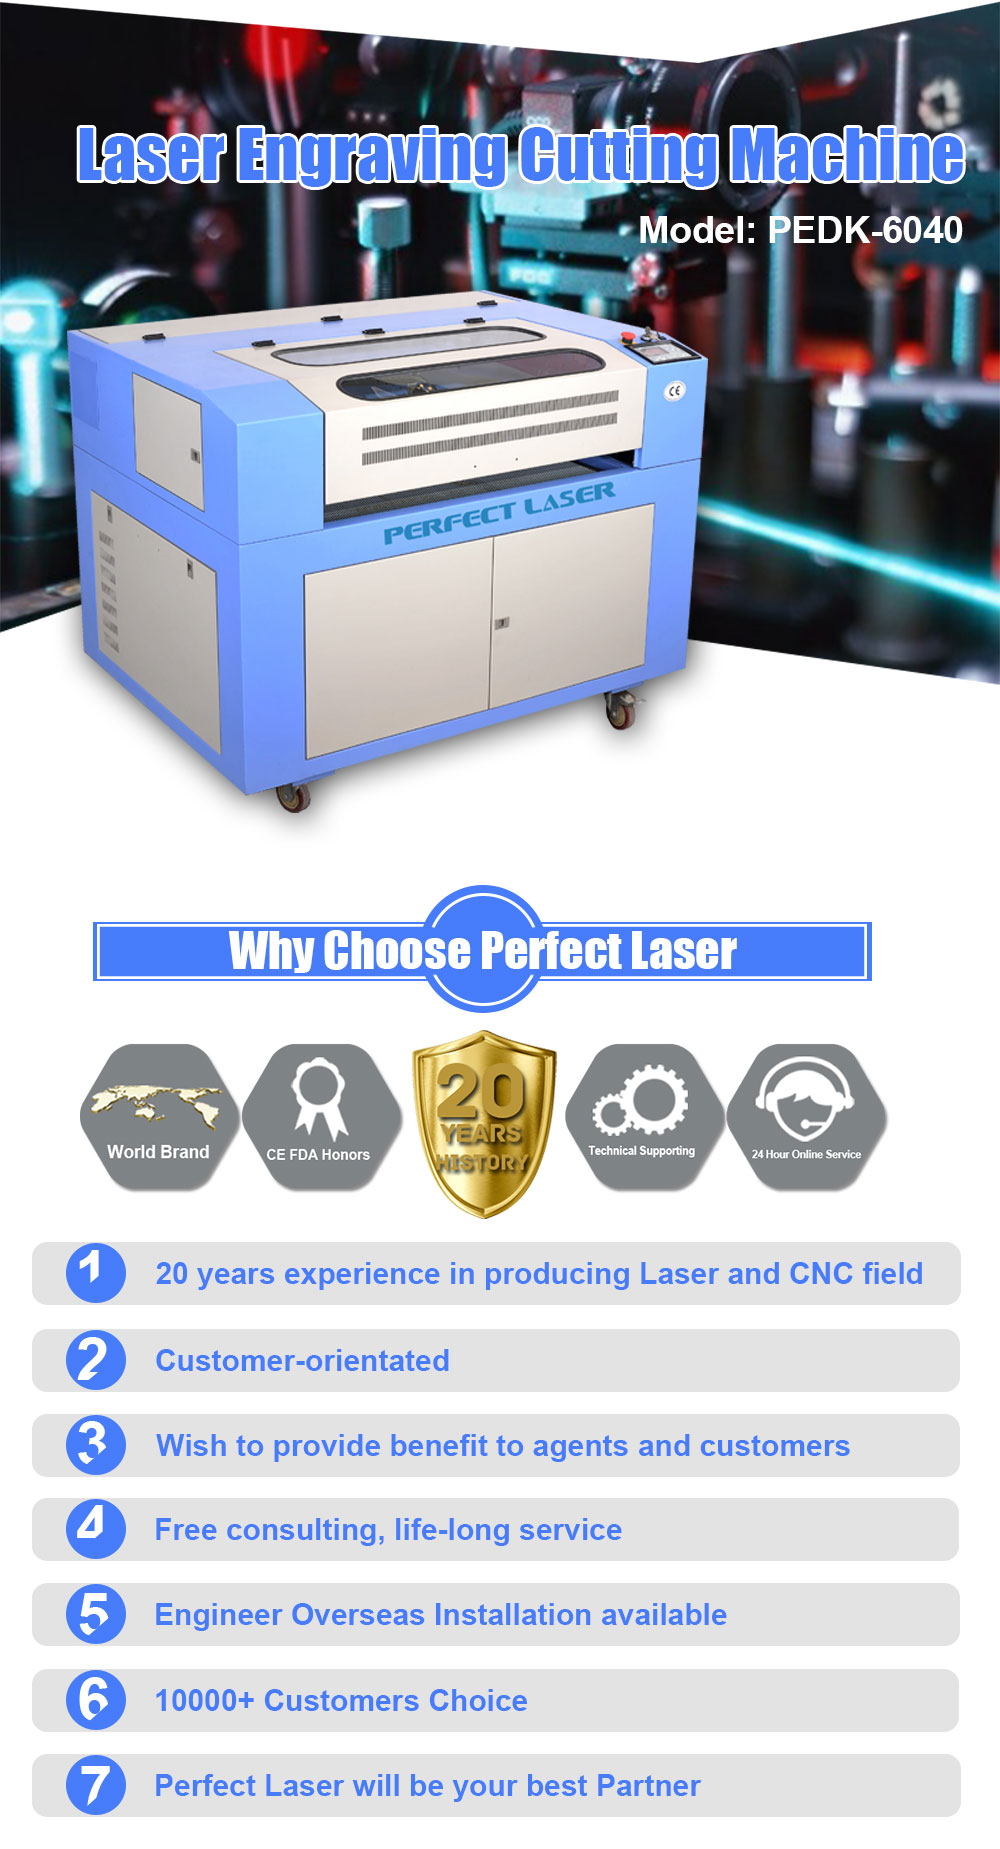 Hot Selling Co2 Laser Engraver And Cutter For Pcb,Wood,Acrylic Engraving  Cutting Machine - Buy Laser Cutting Acrylic,Co2 Laser Engraver,Pcb Laser